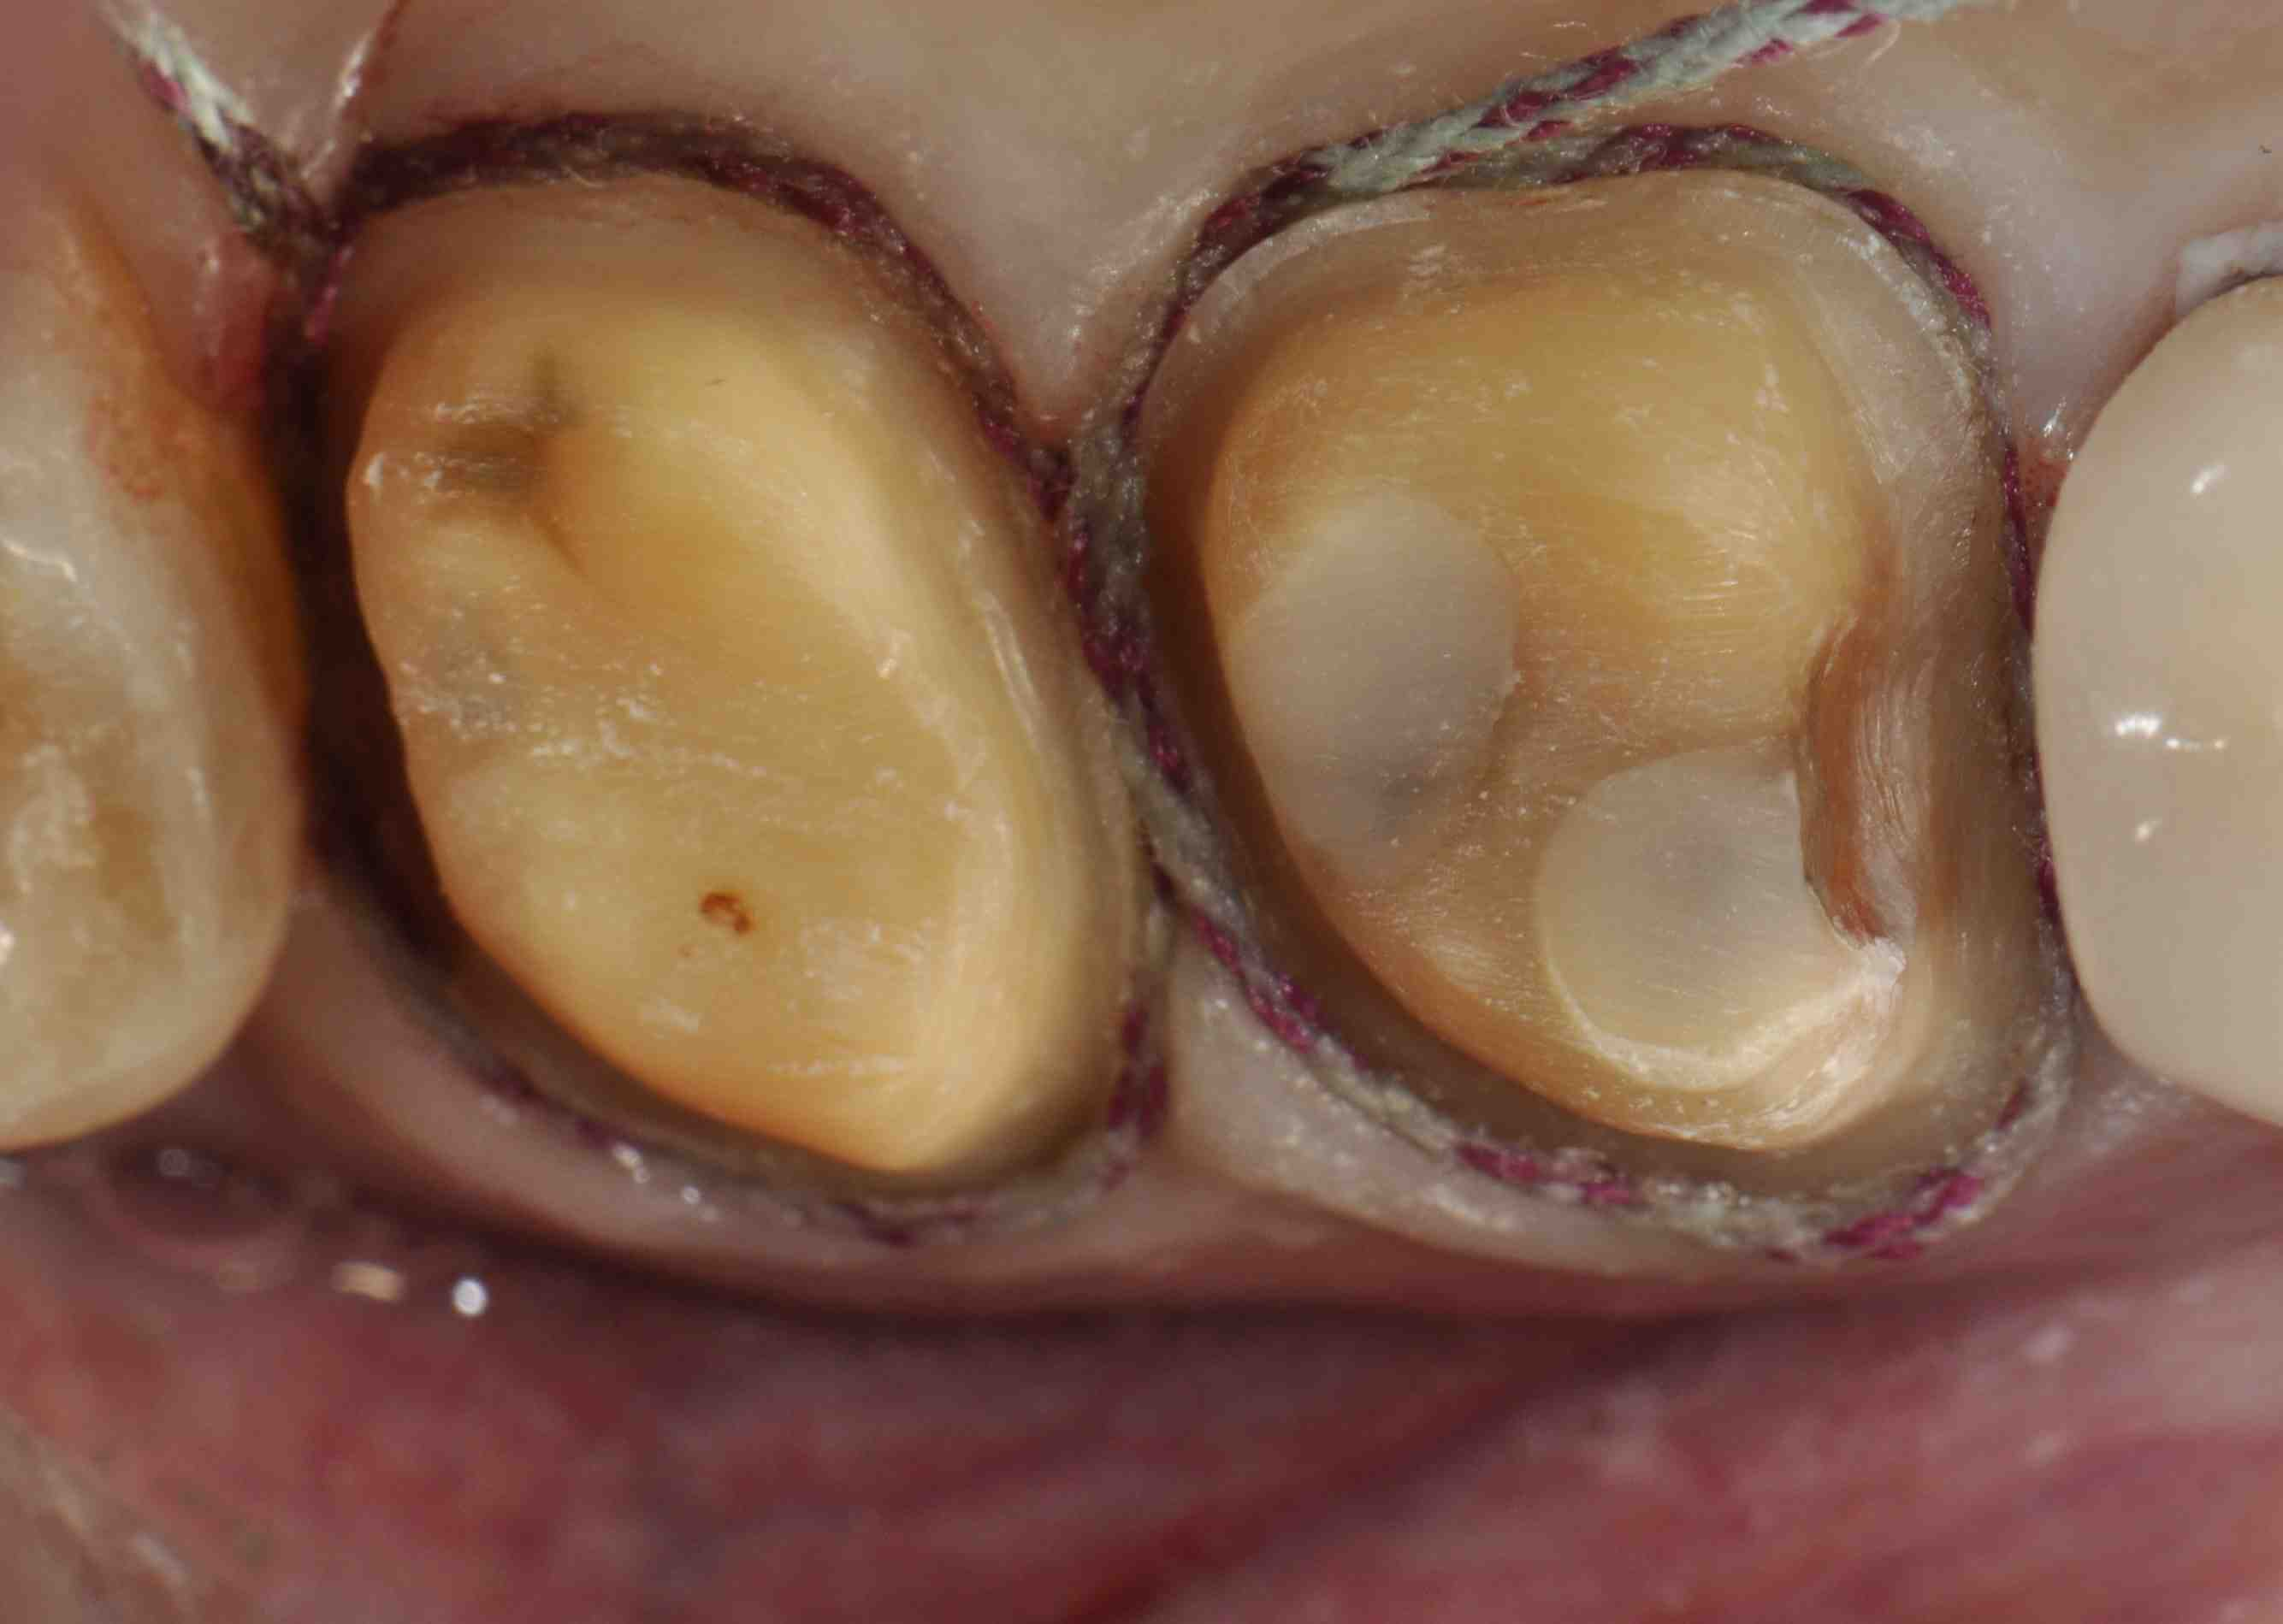 Cracked Teeth: Containment or Cusp Reinforcement?